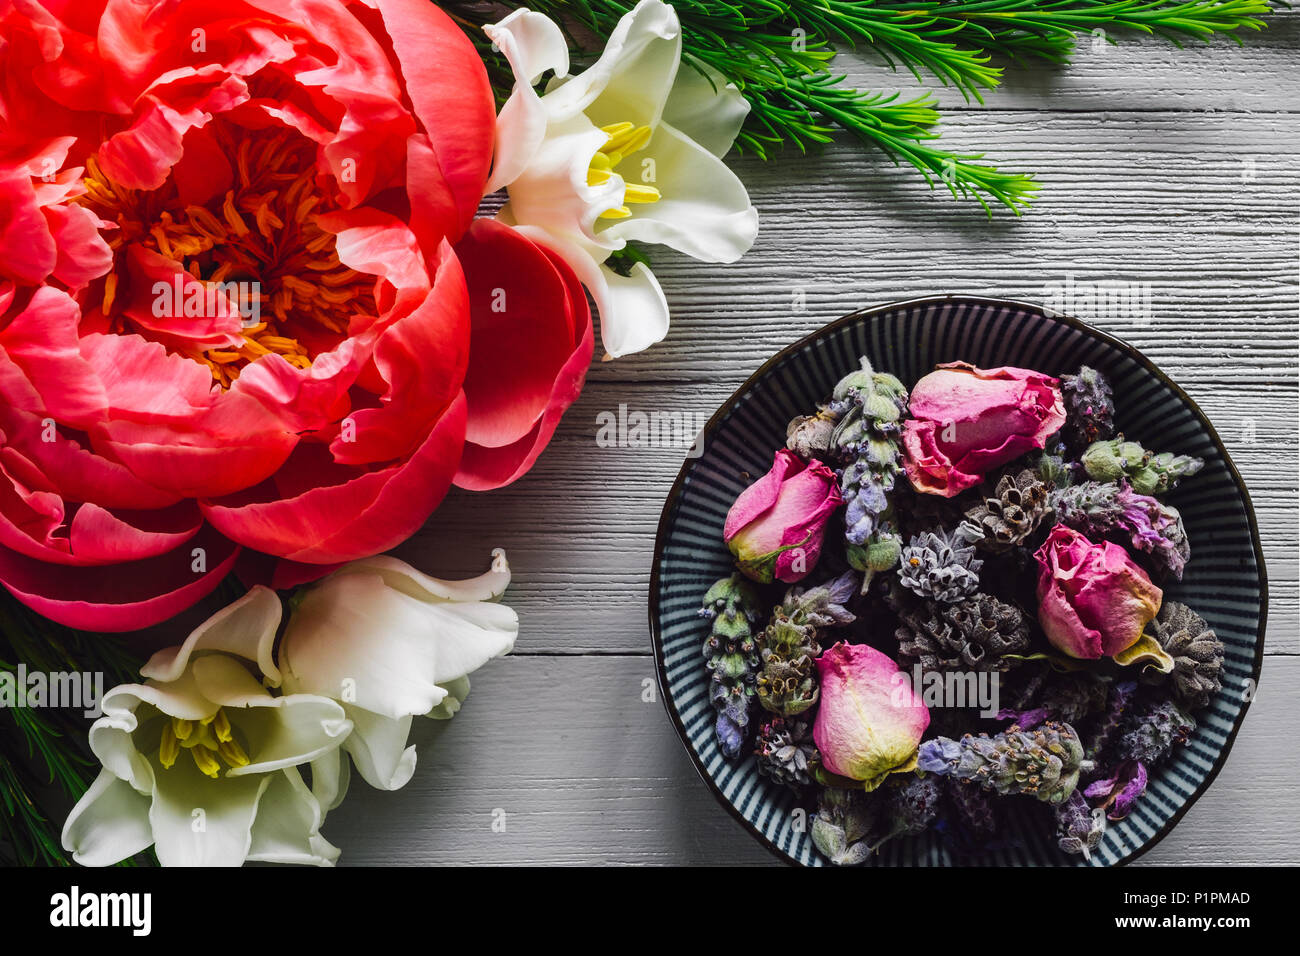 Bowl of Dried Flowers, Including, Lavender, Rose and White Sage,  on White Table with Tulip and Peony Flowers - Stock Image